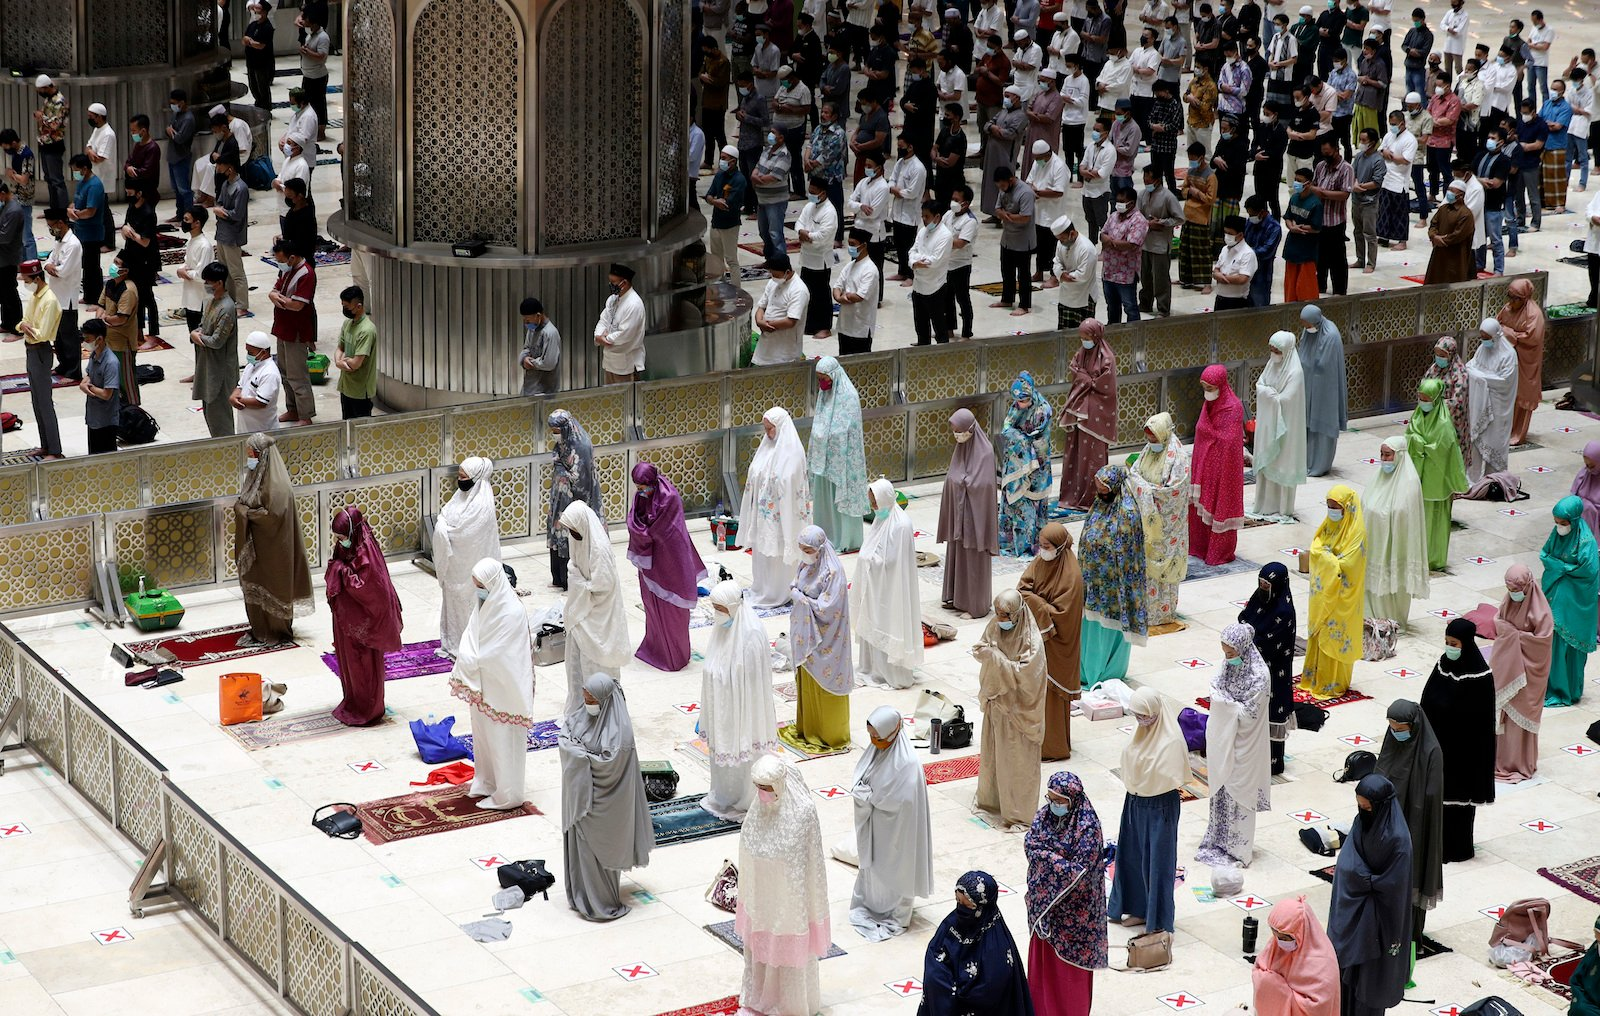 Indonesian Muslims pray while practicing social distancing to curb the spread of the novel coronavirus during an evening prayer called tarawih as they mark the first eve of the holy fasting month of Ramadan at Istiqlal Mosque in Jakarta, Indonesia, on April 12, 2021. During Ramadan, the holiest month in the Islamic calendar, Muslims refrain from eating, drinking, smoking and sex from dawn to dusk. (AP Photo/ Achmad Ibrahim)